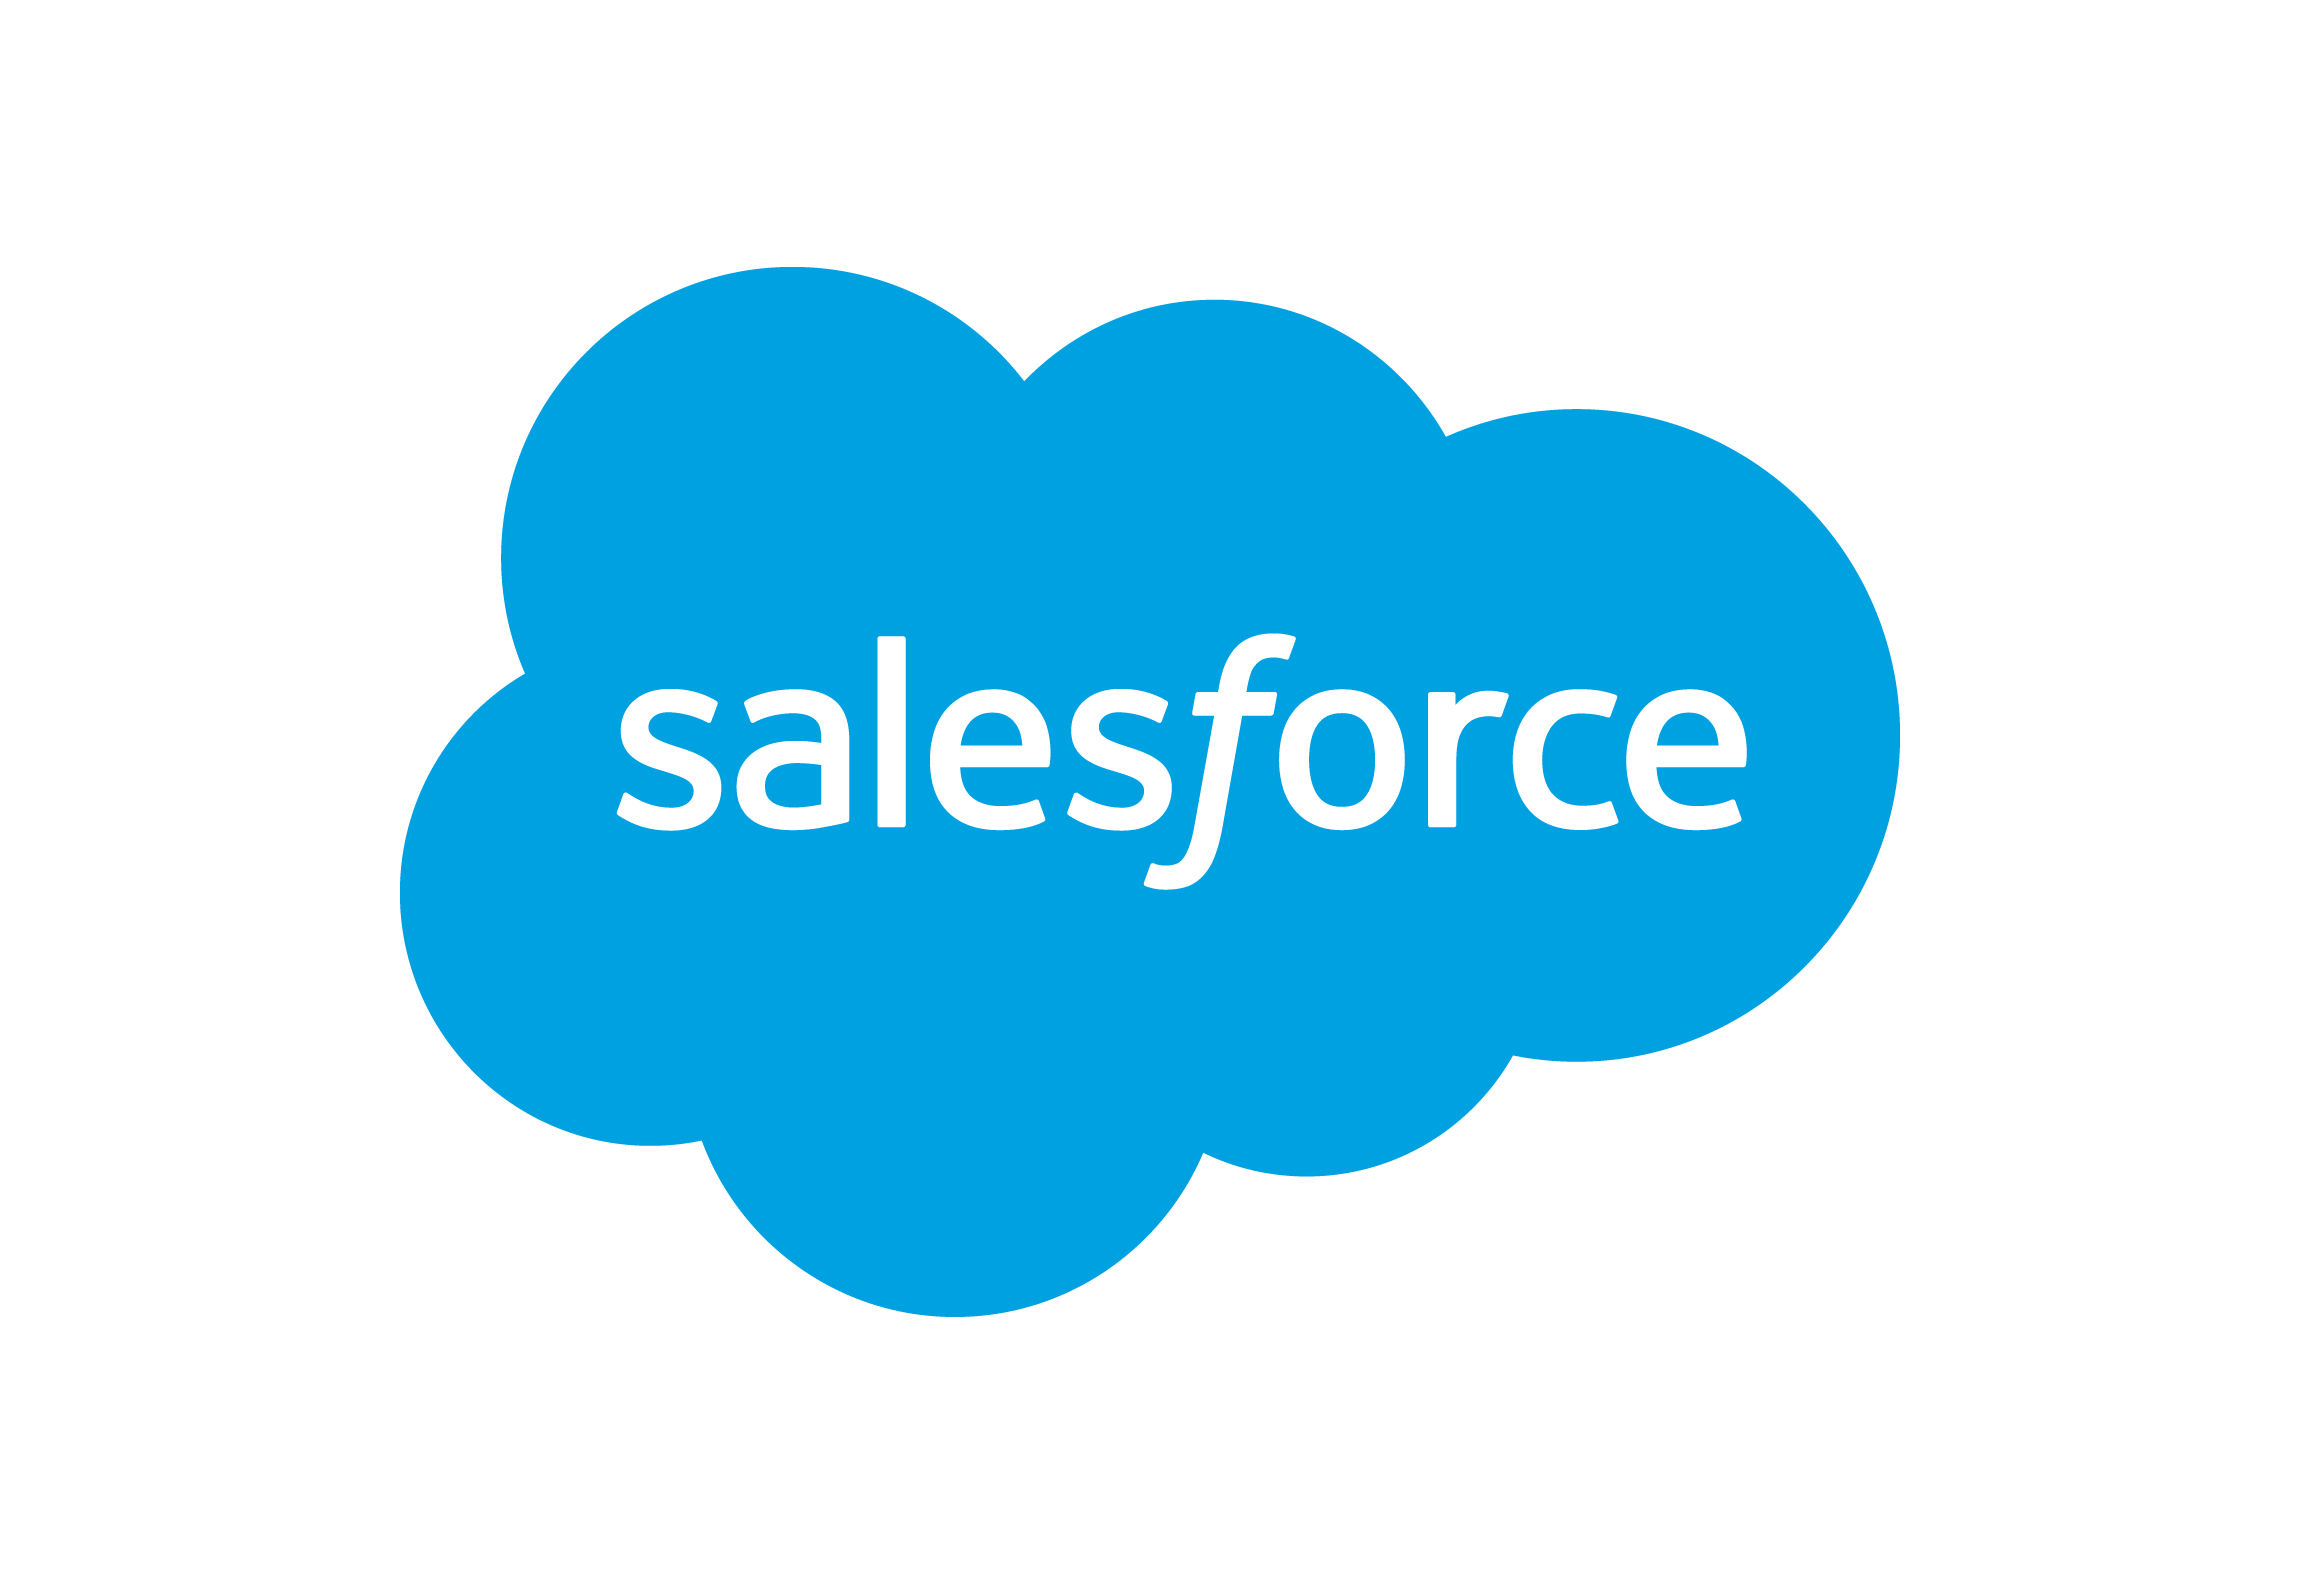 3salesforce-logo-vector-png-salesforce-logo-png-2300